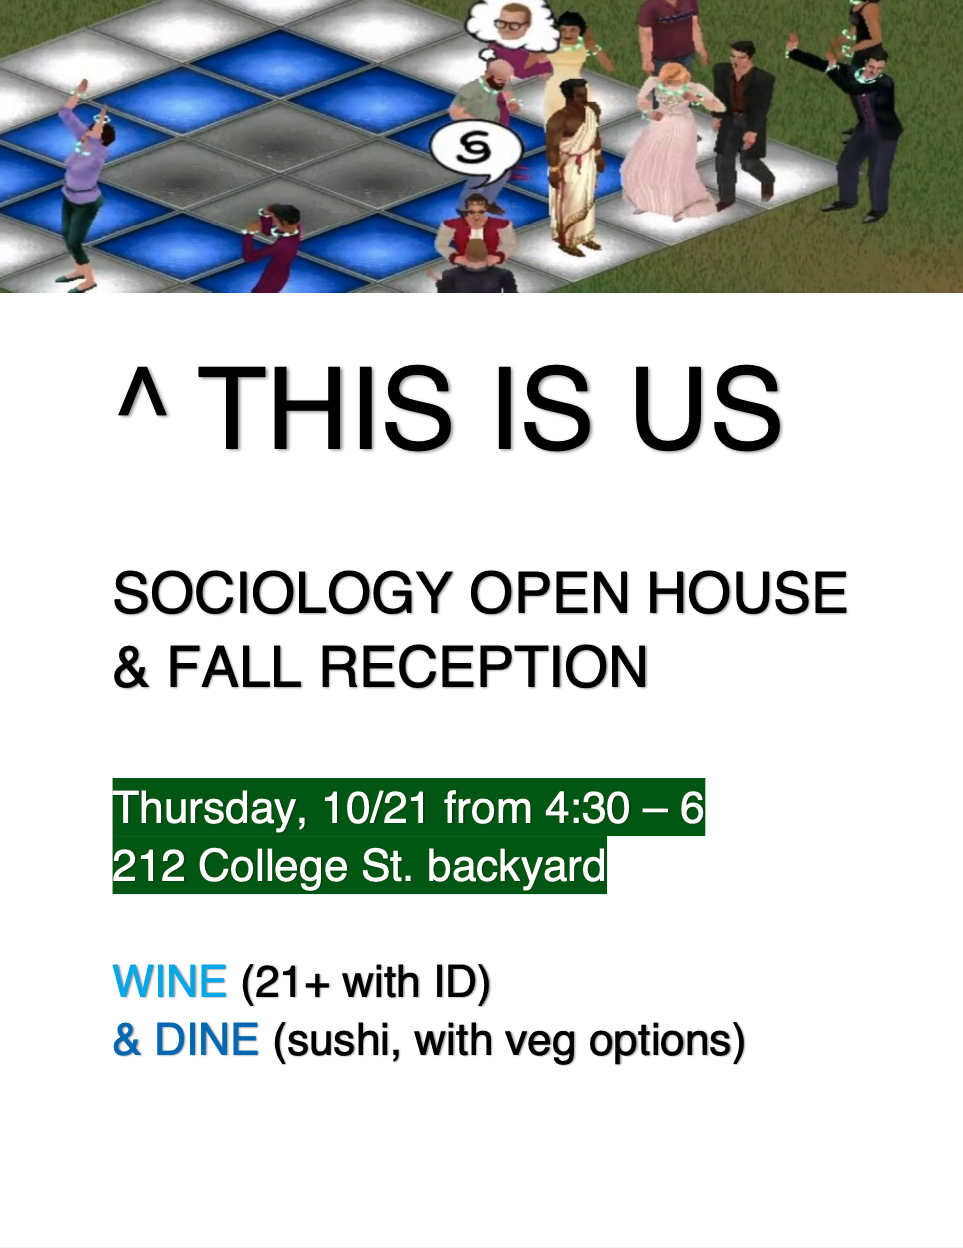 Sociology Open House and Reception, Thursday, 10/21 4:30-6 pm, 212 College St. backyard